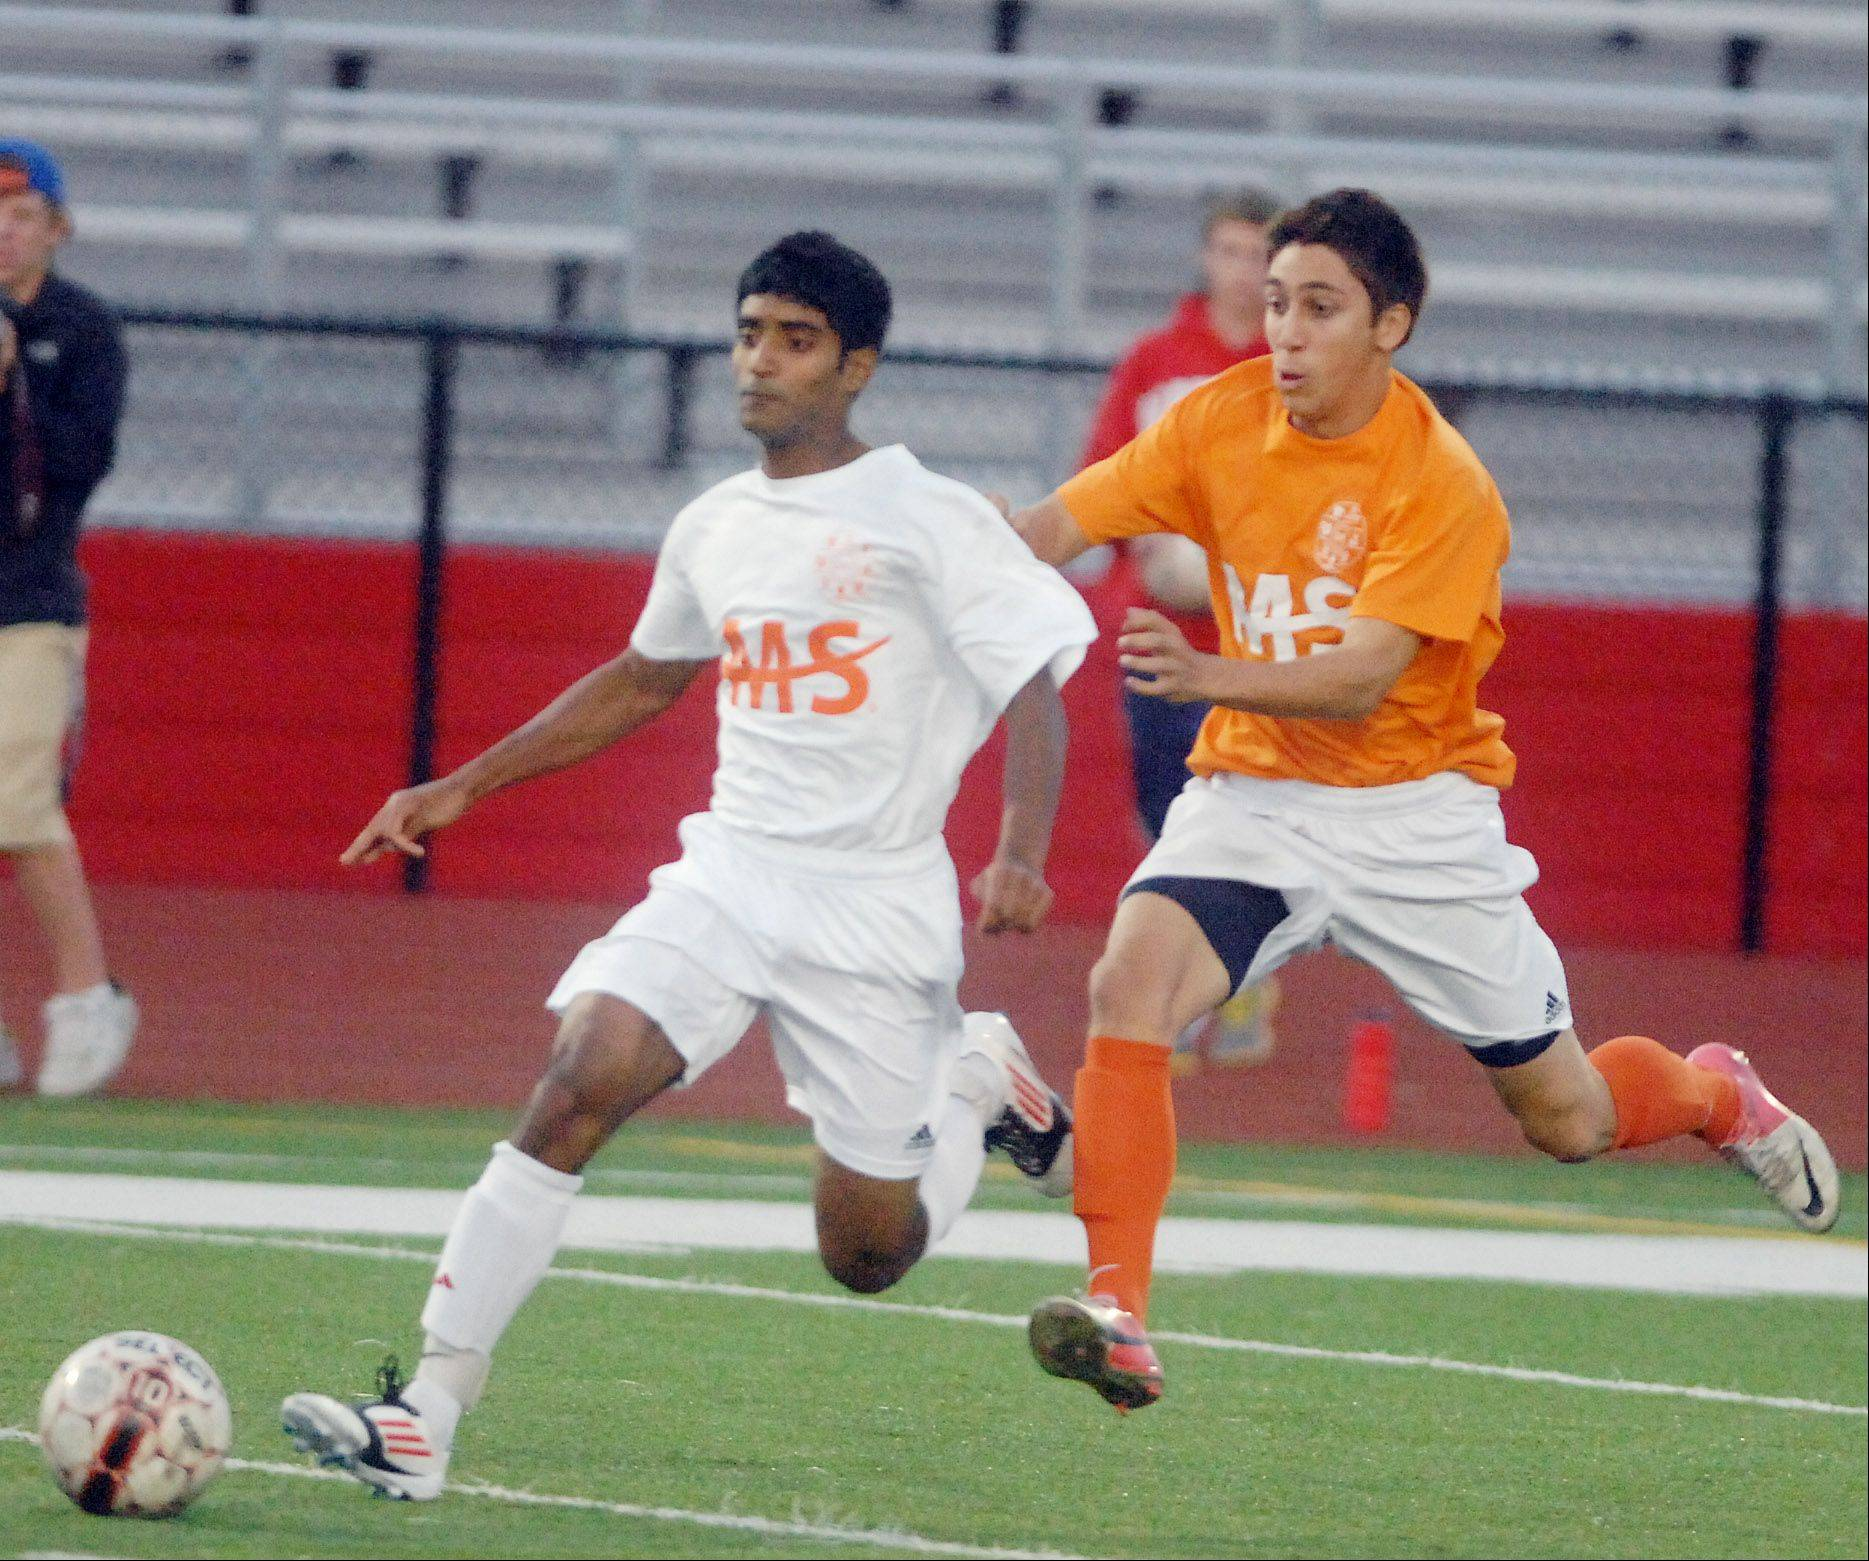 Ajay Varghese,left, of Naperville Central and Chris MacClean of Naperville North chase down a ball during the Napervile Central vs. Naperville North boys soccer game in Naperville Tuesday.